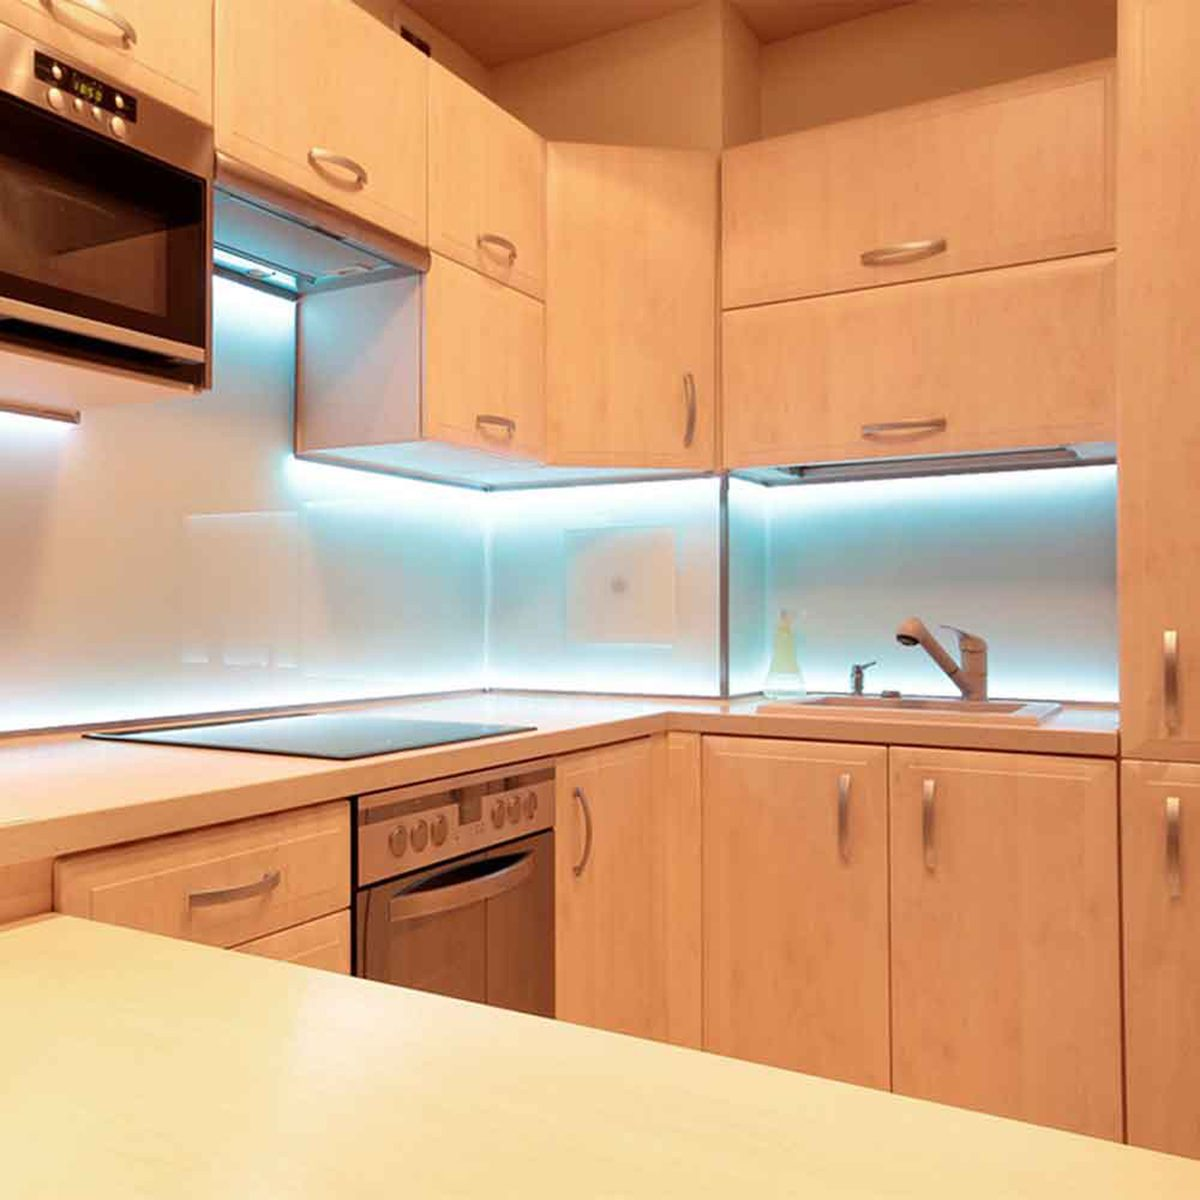 Kitchen with under the cabinet lighting